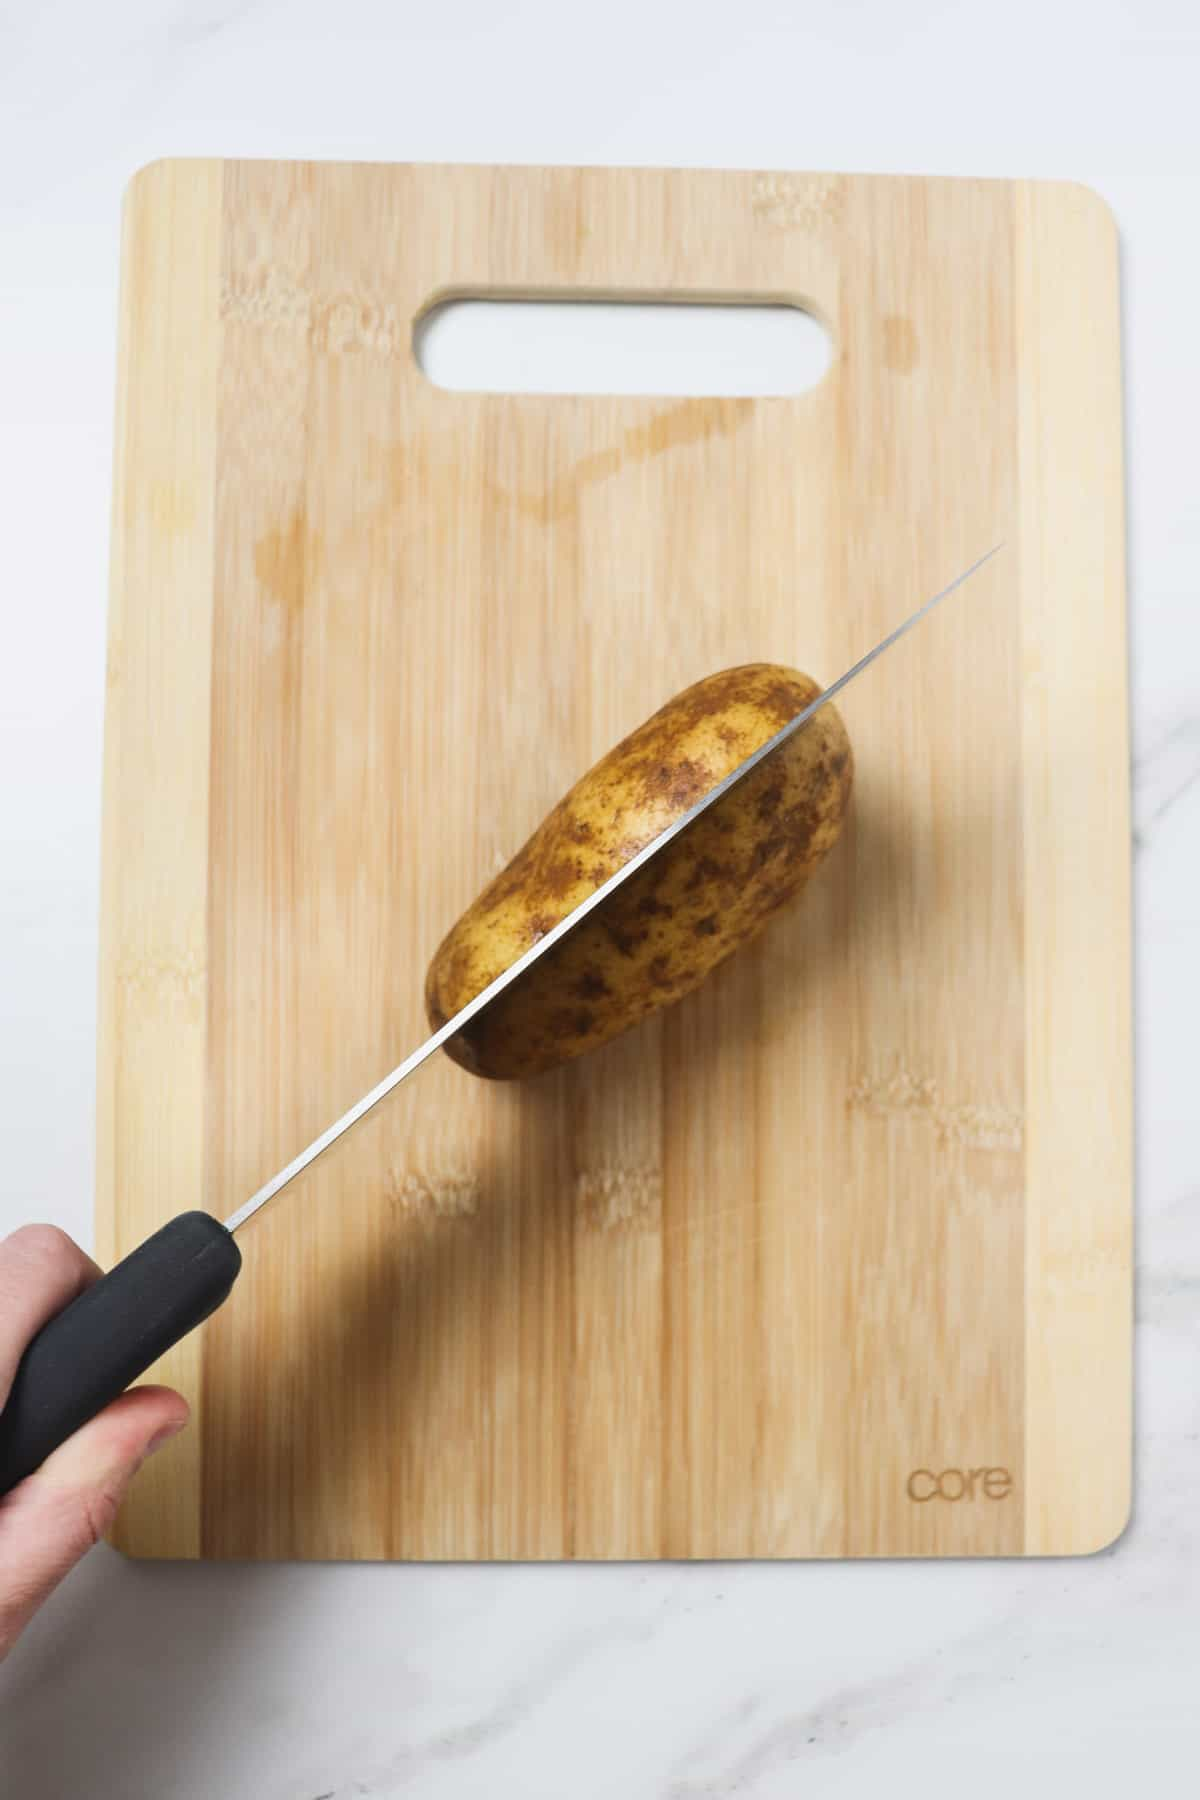 slicing a potato in half on a wood cutting board